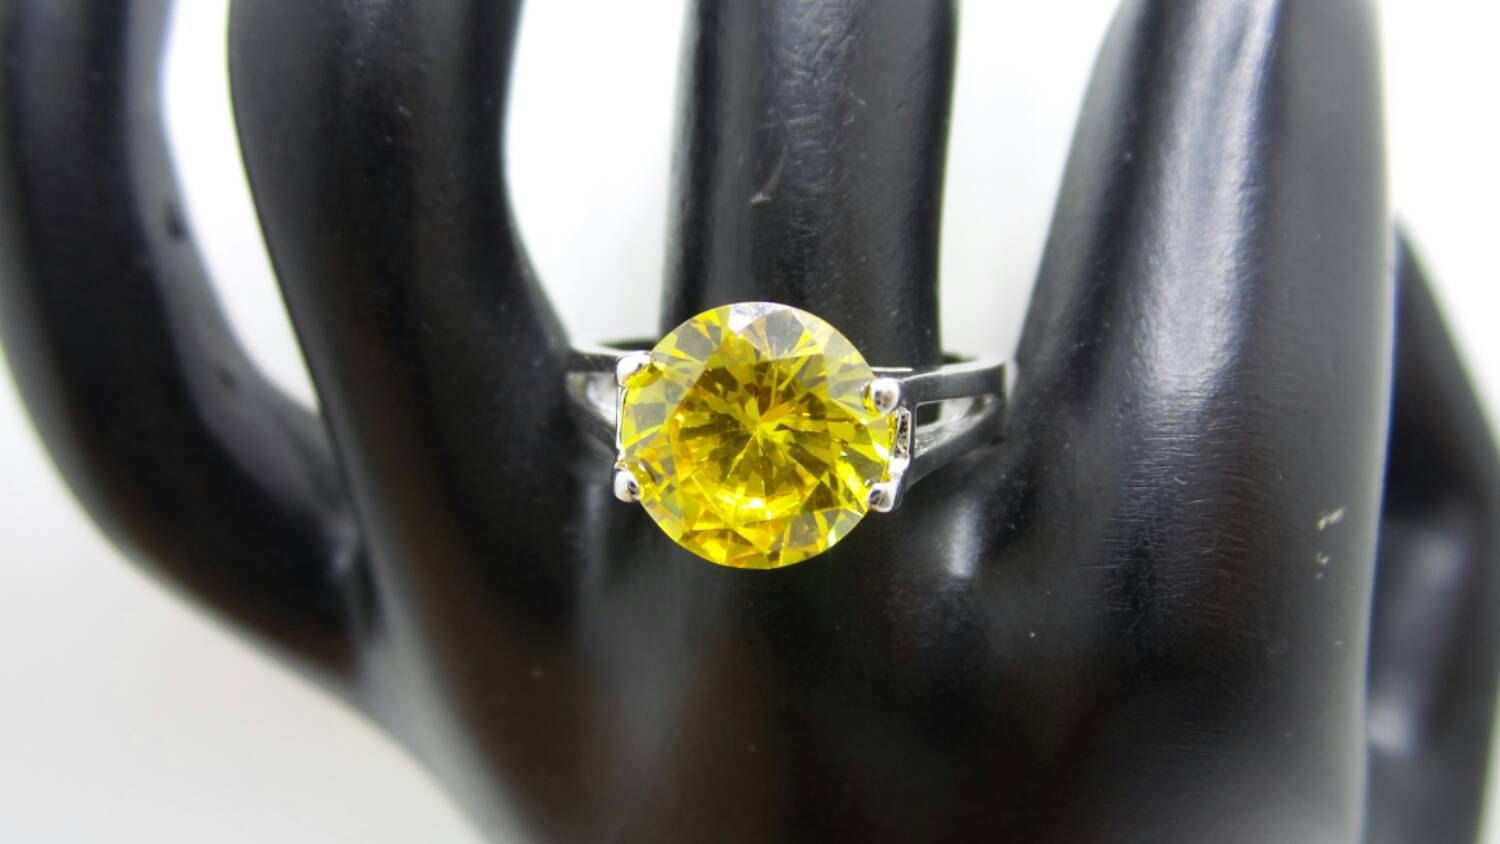 Citrine Sterling Silver ring, size 8.75 by FierStaarGems on Etsy